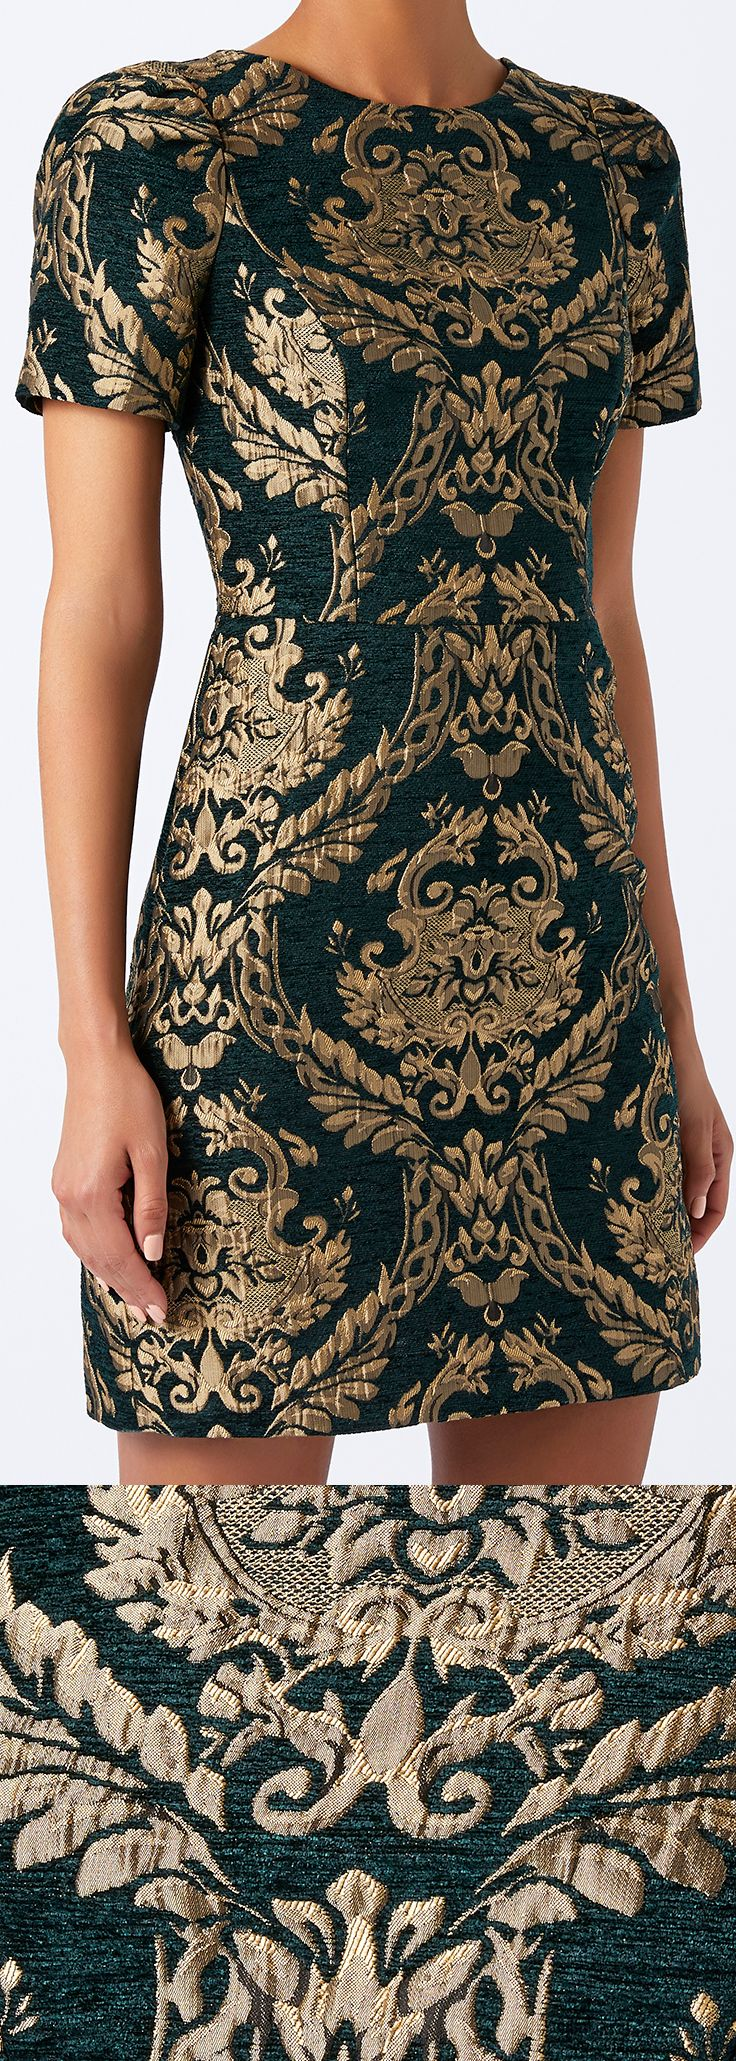 Evoke a touch of Baroque opulence £99.00. Monsoon Roberta jacquard dress. Woven with an elaborate gold pattern, this design features short sleeves and a fitted bodice for a flattering effect. Winter Wedding Guest outfits, what to wear winter wedding. Christmas New Years Eve Party outfit ideas. #festiveseason #Christmas #giftsforher #christmasparty #dress #newyearseve #affiliatelink #winterwedding